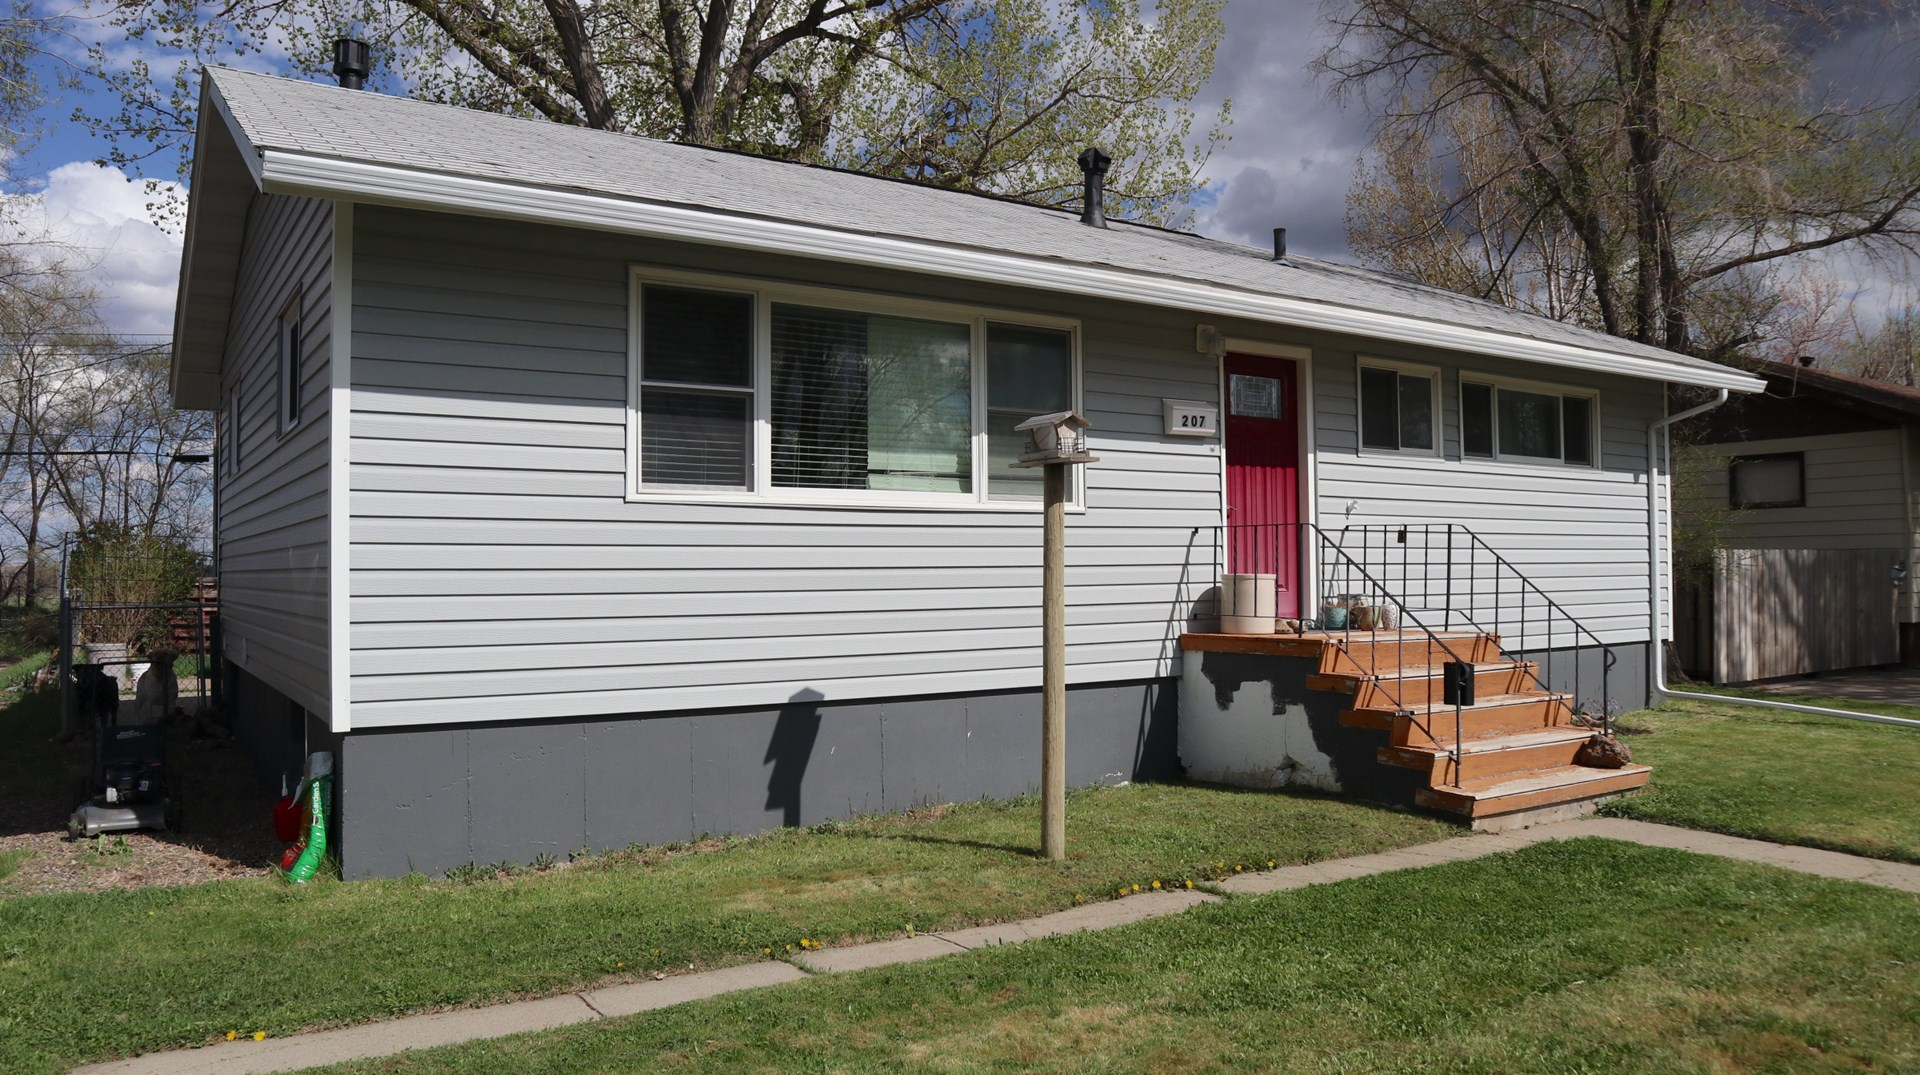 Clean and Comfortable Home for Sale in Glendive MT